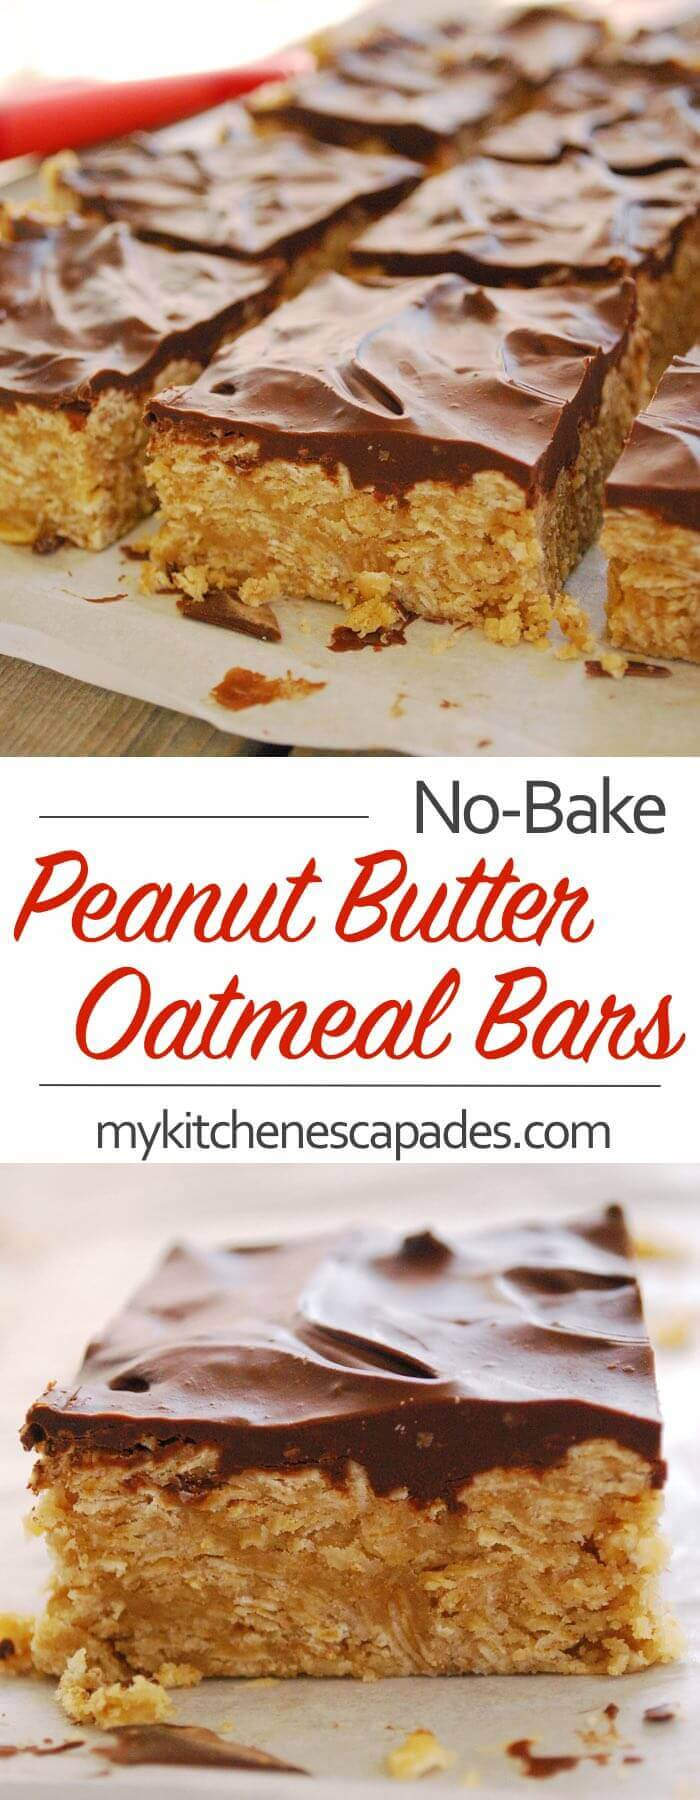 NO-BAKE PEANUT BUTTER OATMEAL BARS